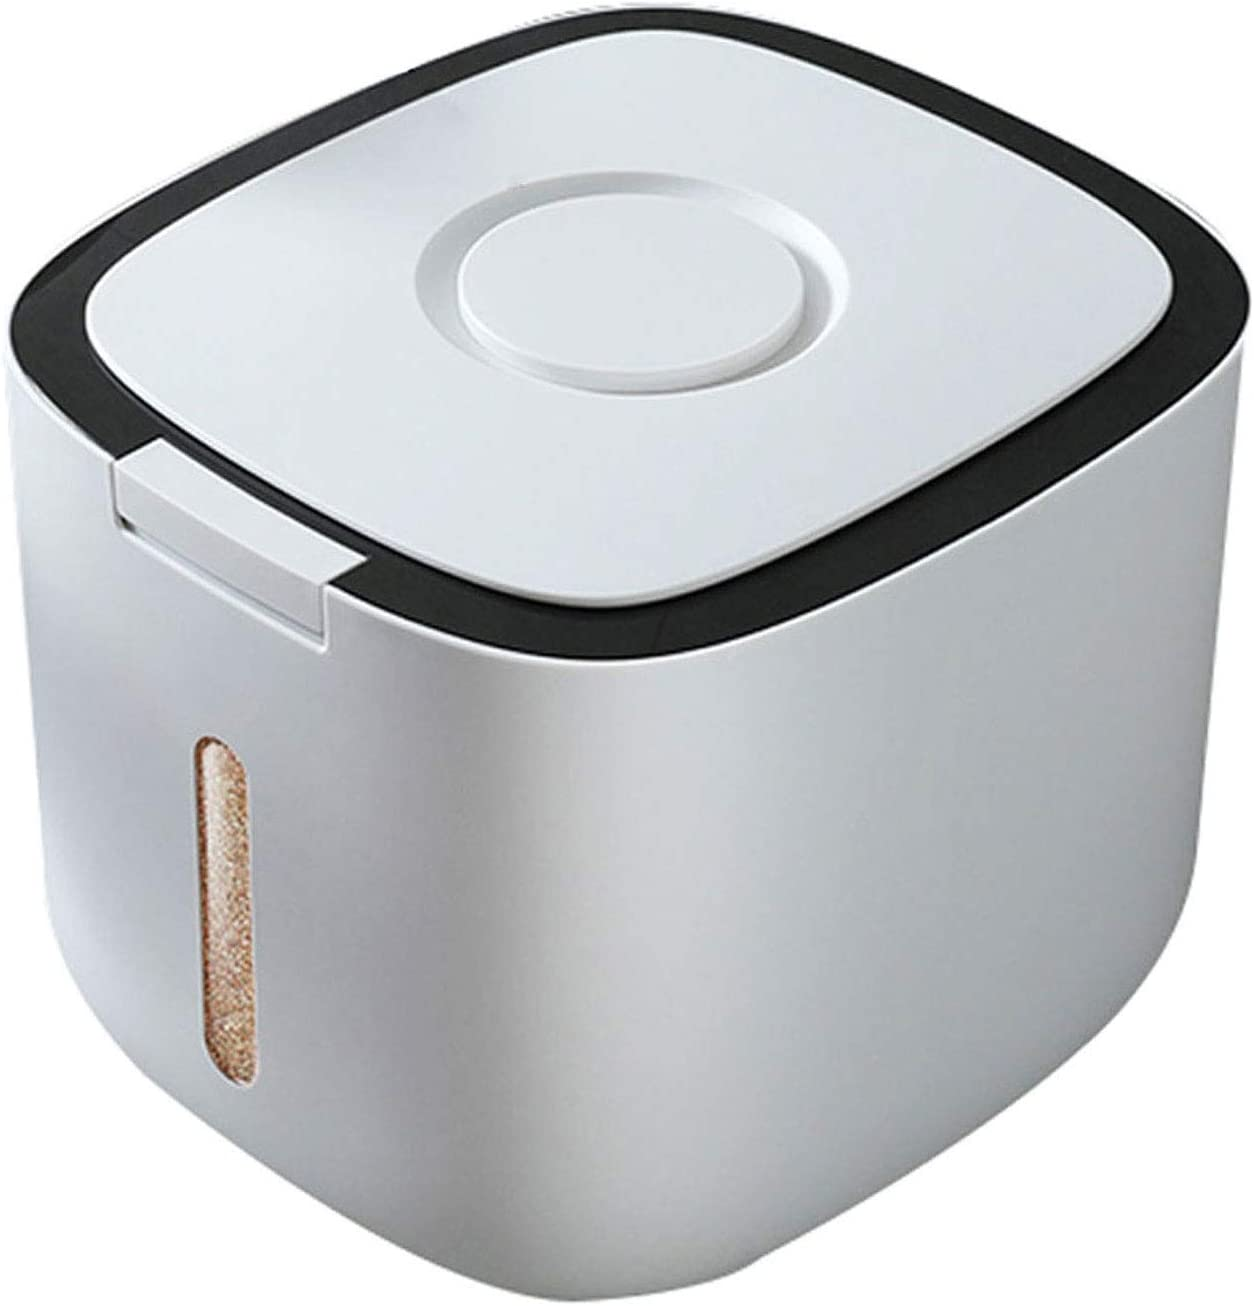 Rice Dispenser Cereal Storage Container Dry Food Countertop Di Free Shipping New Recommended